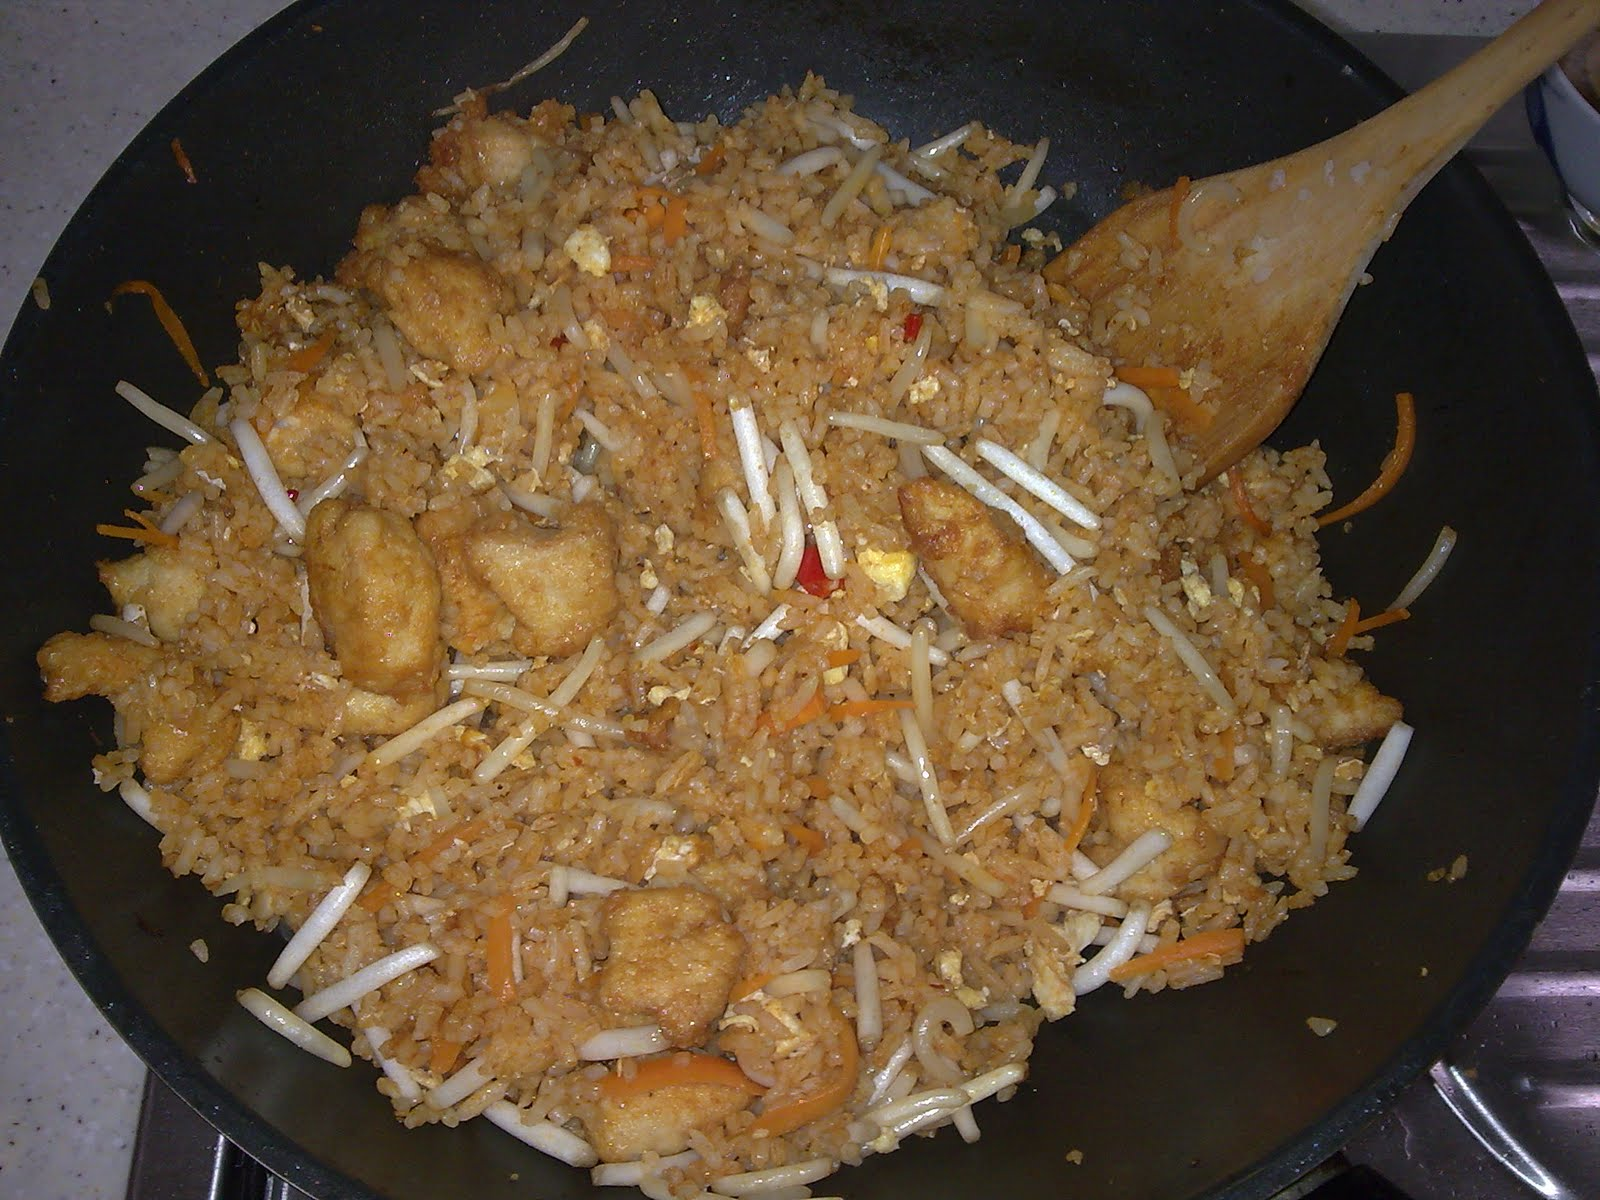 ... yam soup why not opt for something different tom yam fried rice just